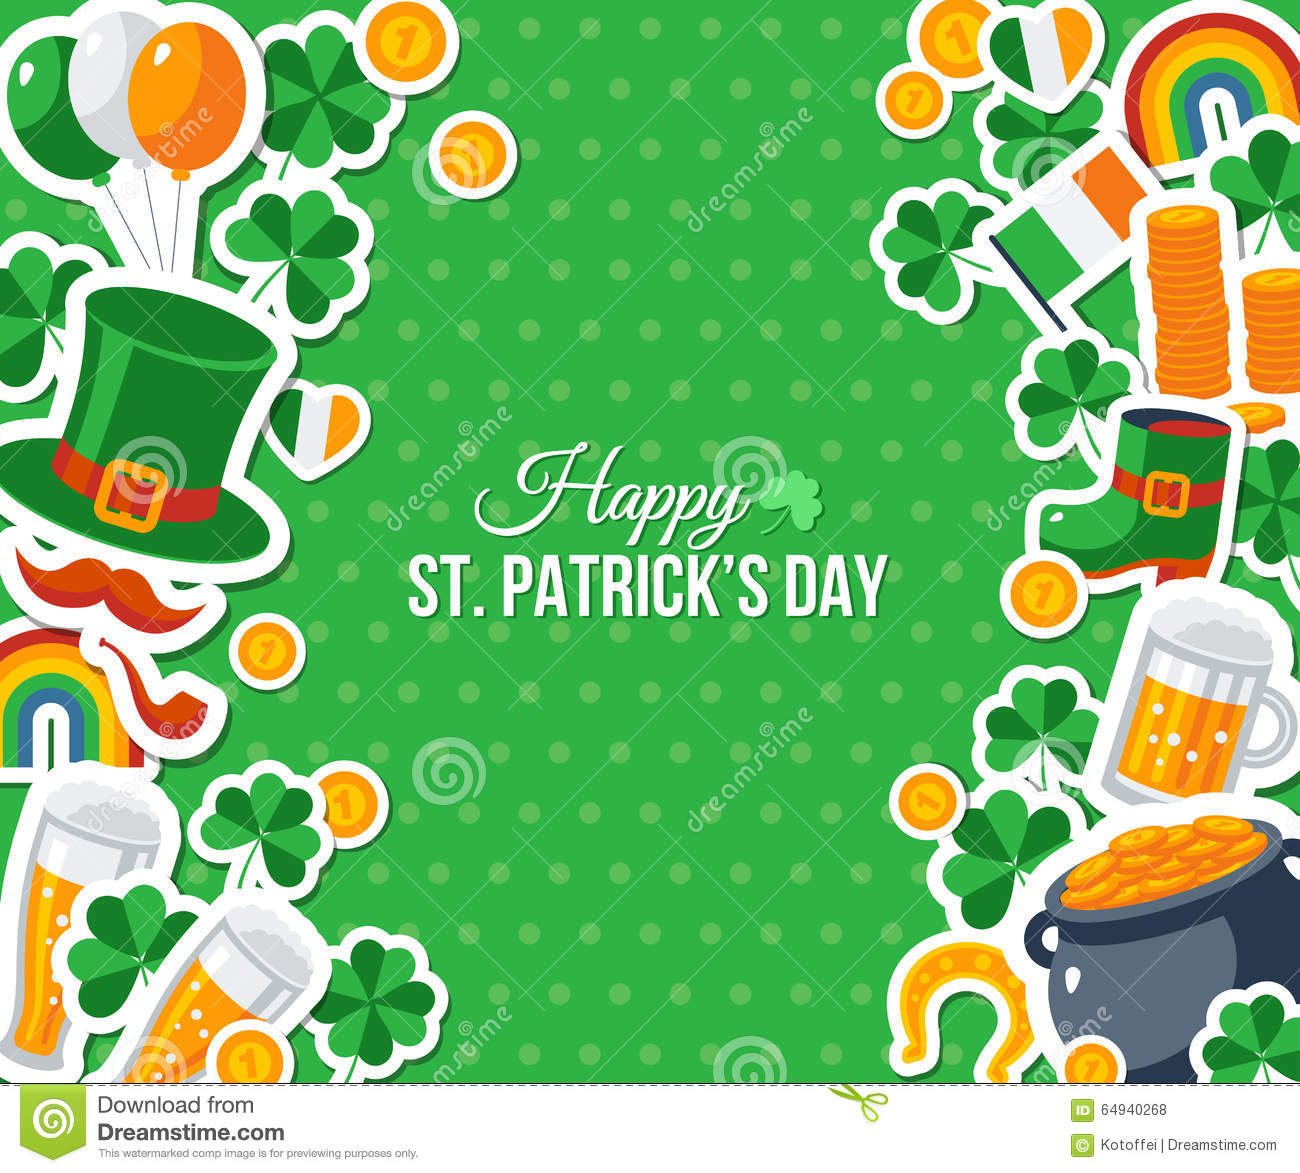 Patricks Day Greeting Card stock vector. Image of icon - 64940268